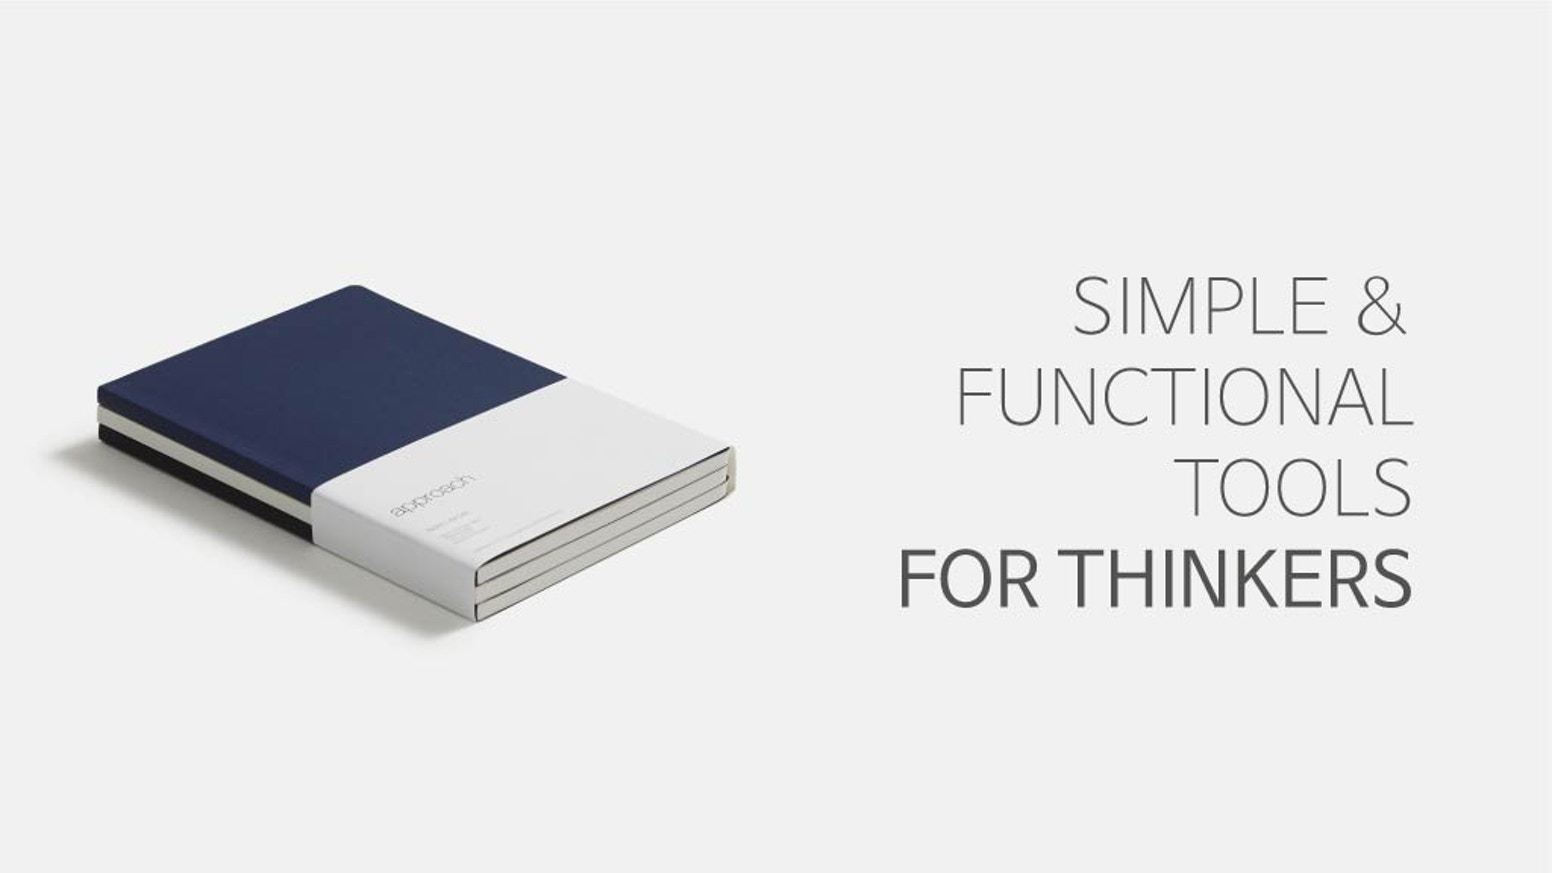 Functional notebooks and planners with innovative add-ons designed to optimize the user experience of 'Thinkers'